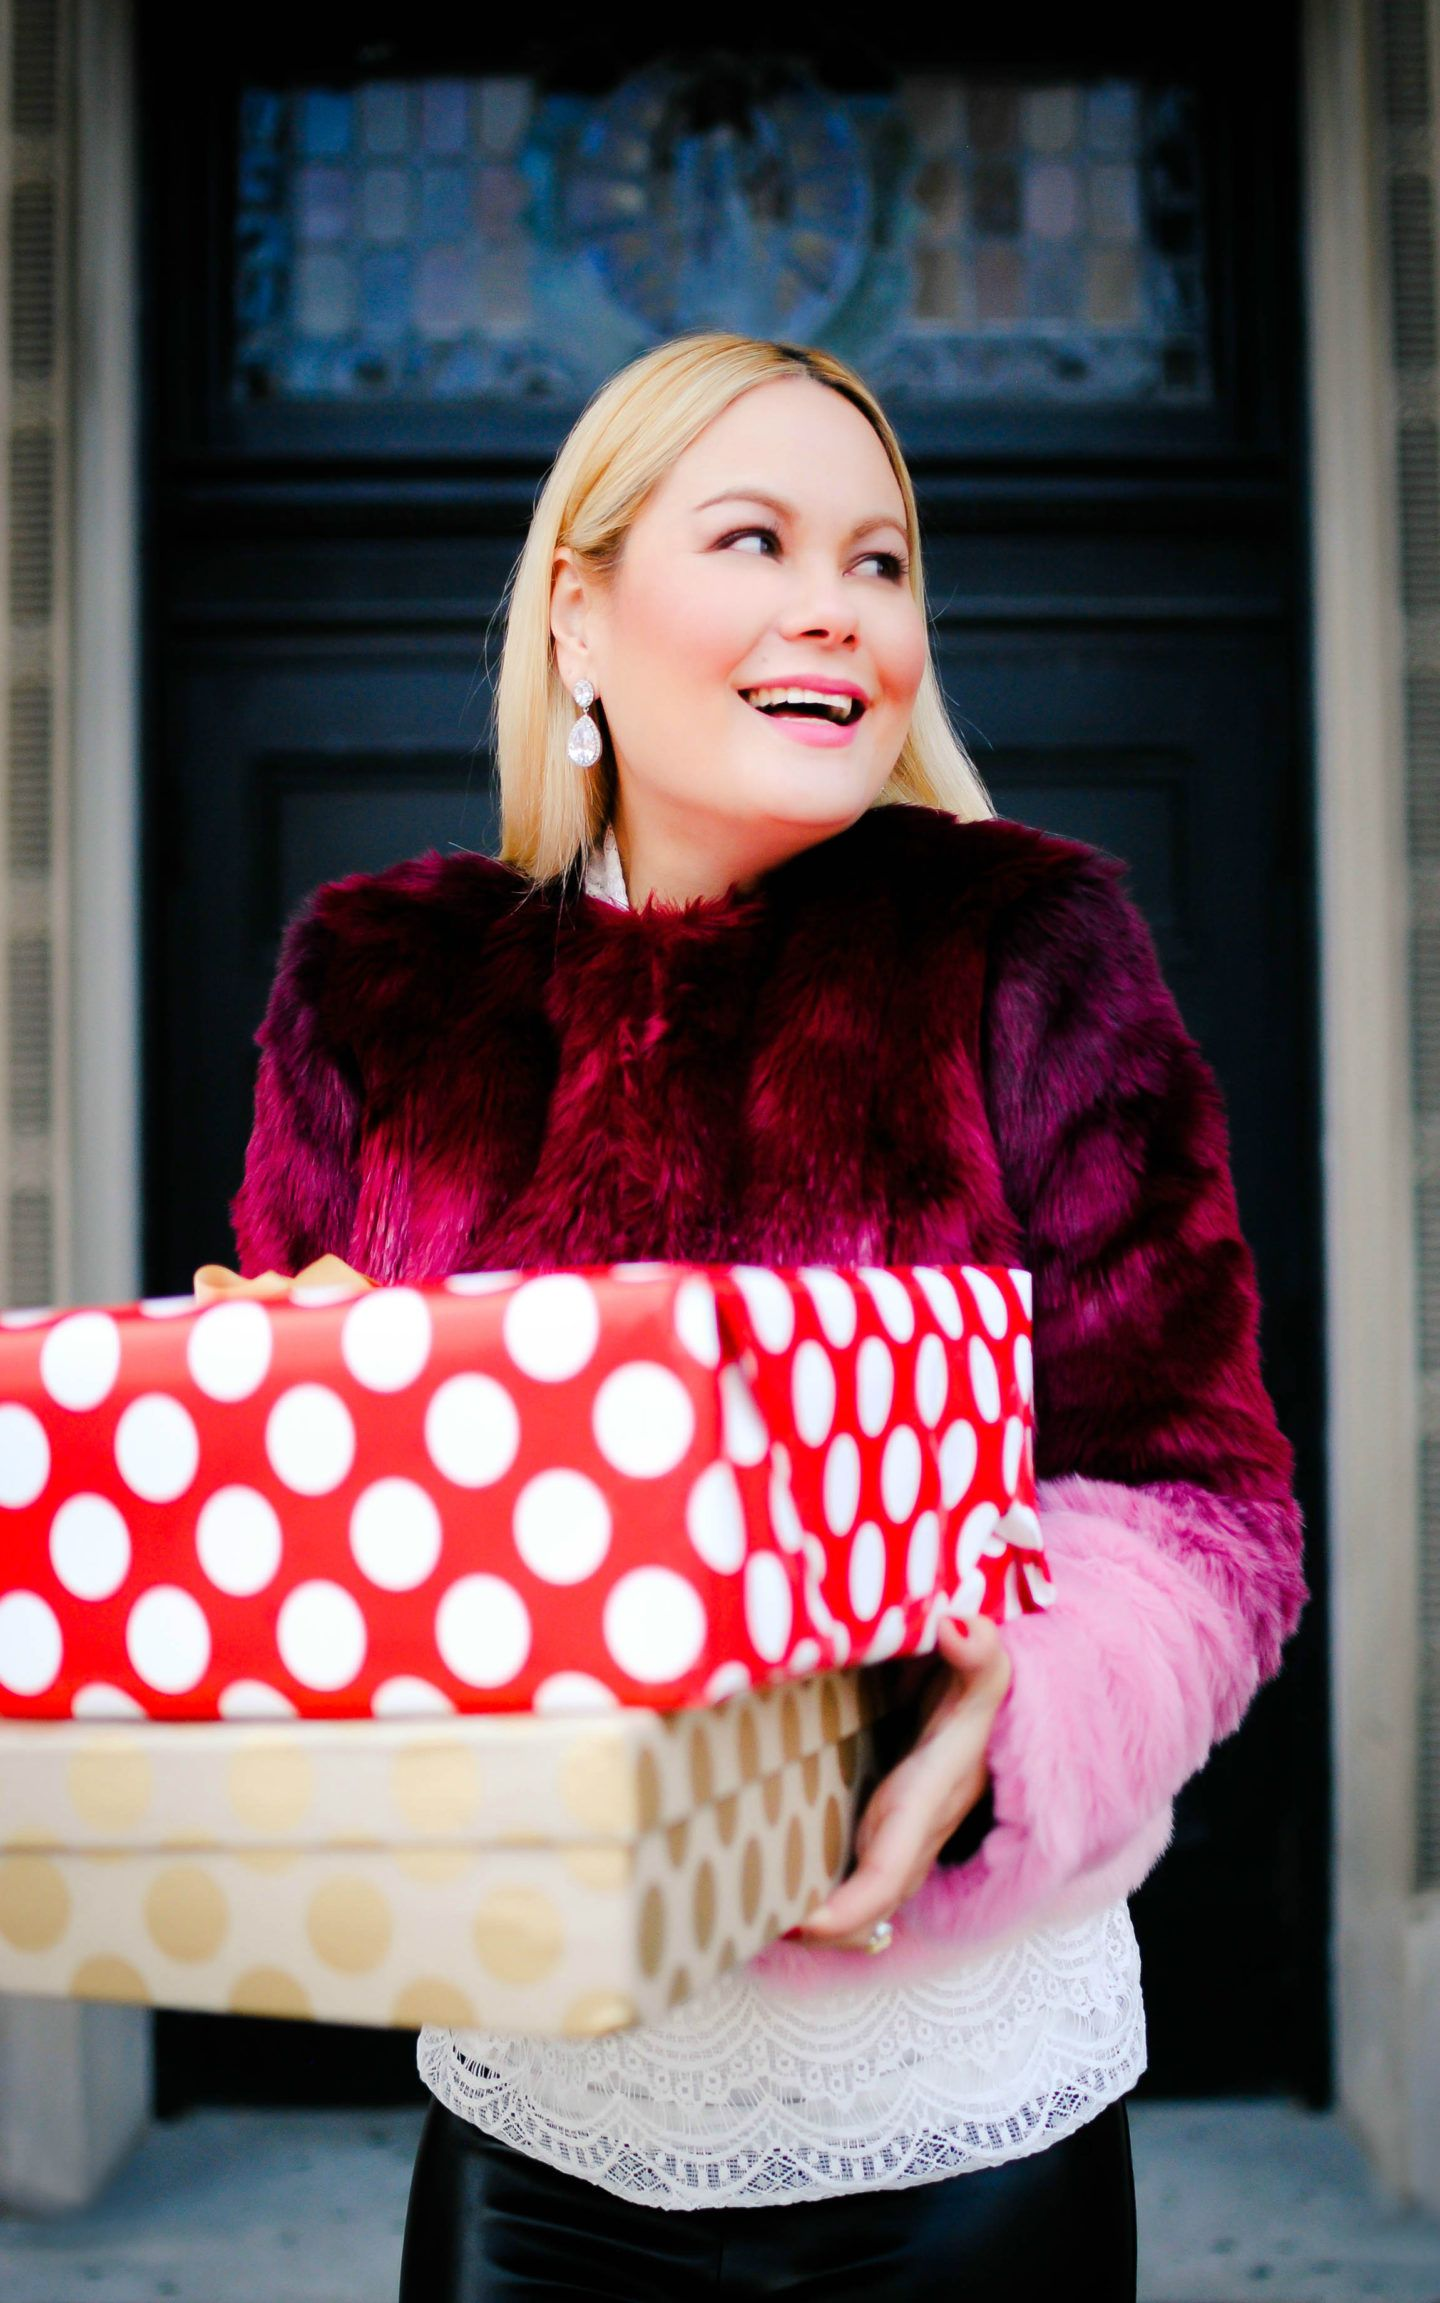 6d4d22c3bef7 vanessa-lambert-blogger-behind-what-would-v-wear -reveals-her-secret-santa-unrwrapping-gifts-from-new-york-and-company_1